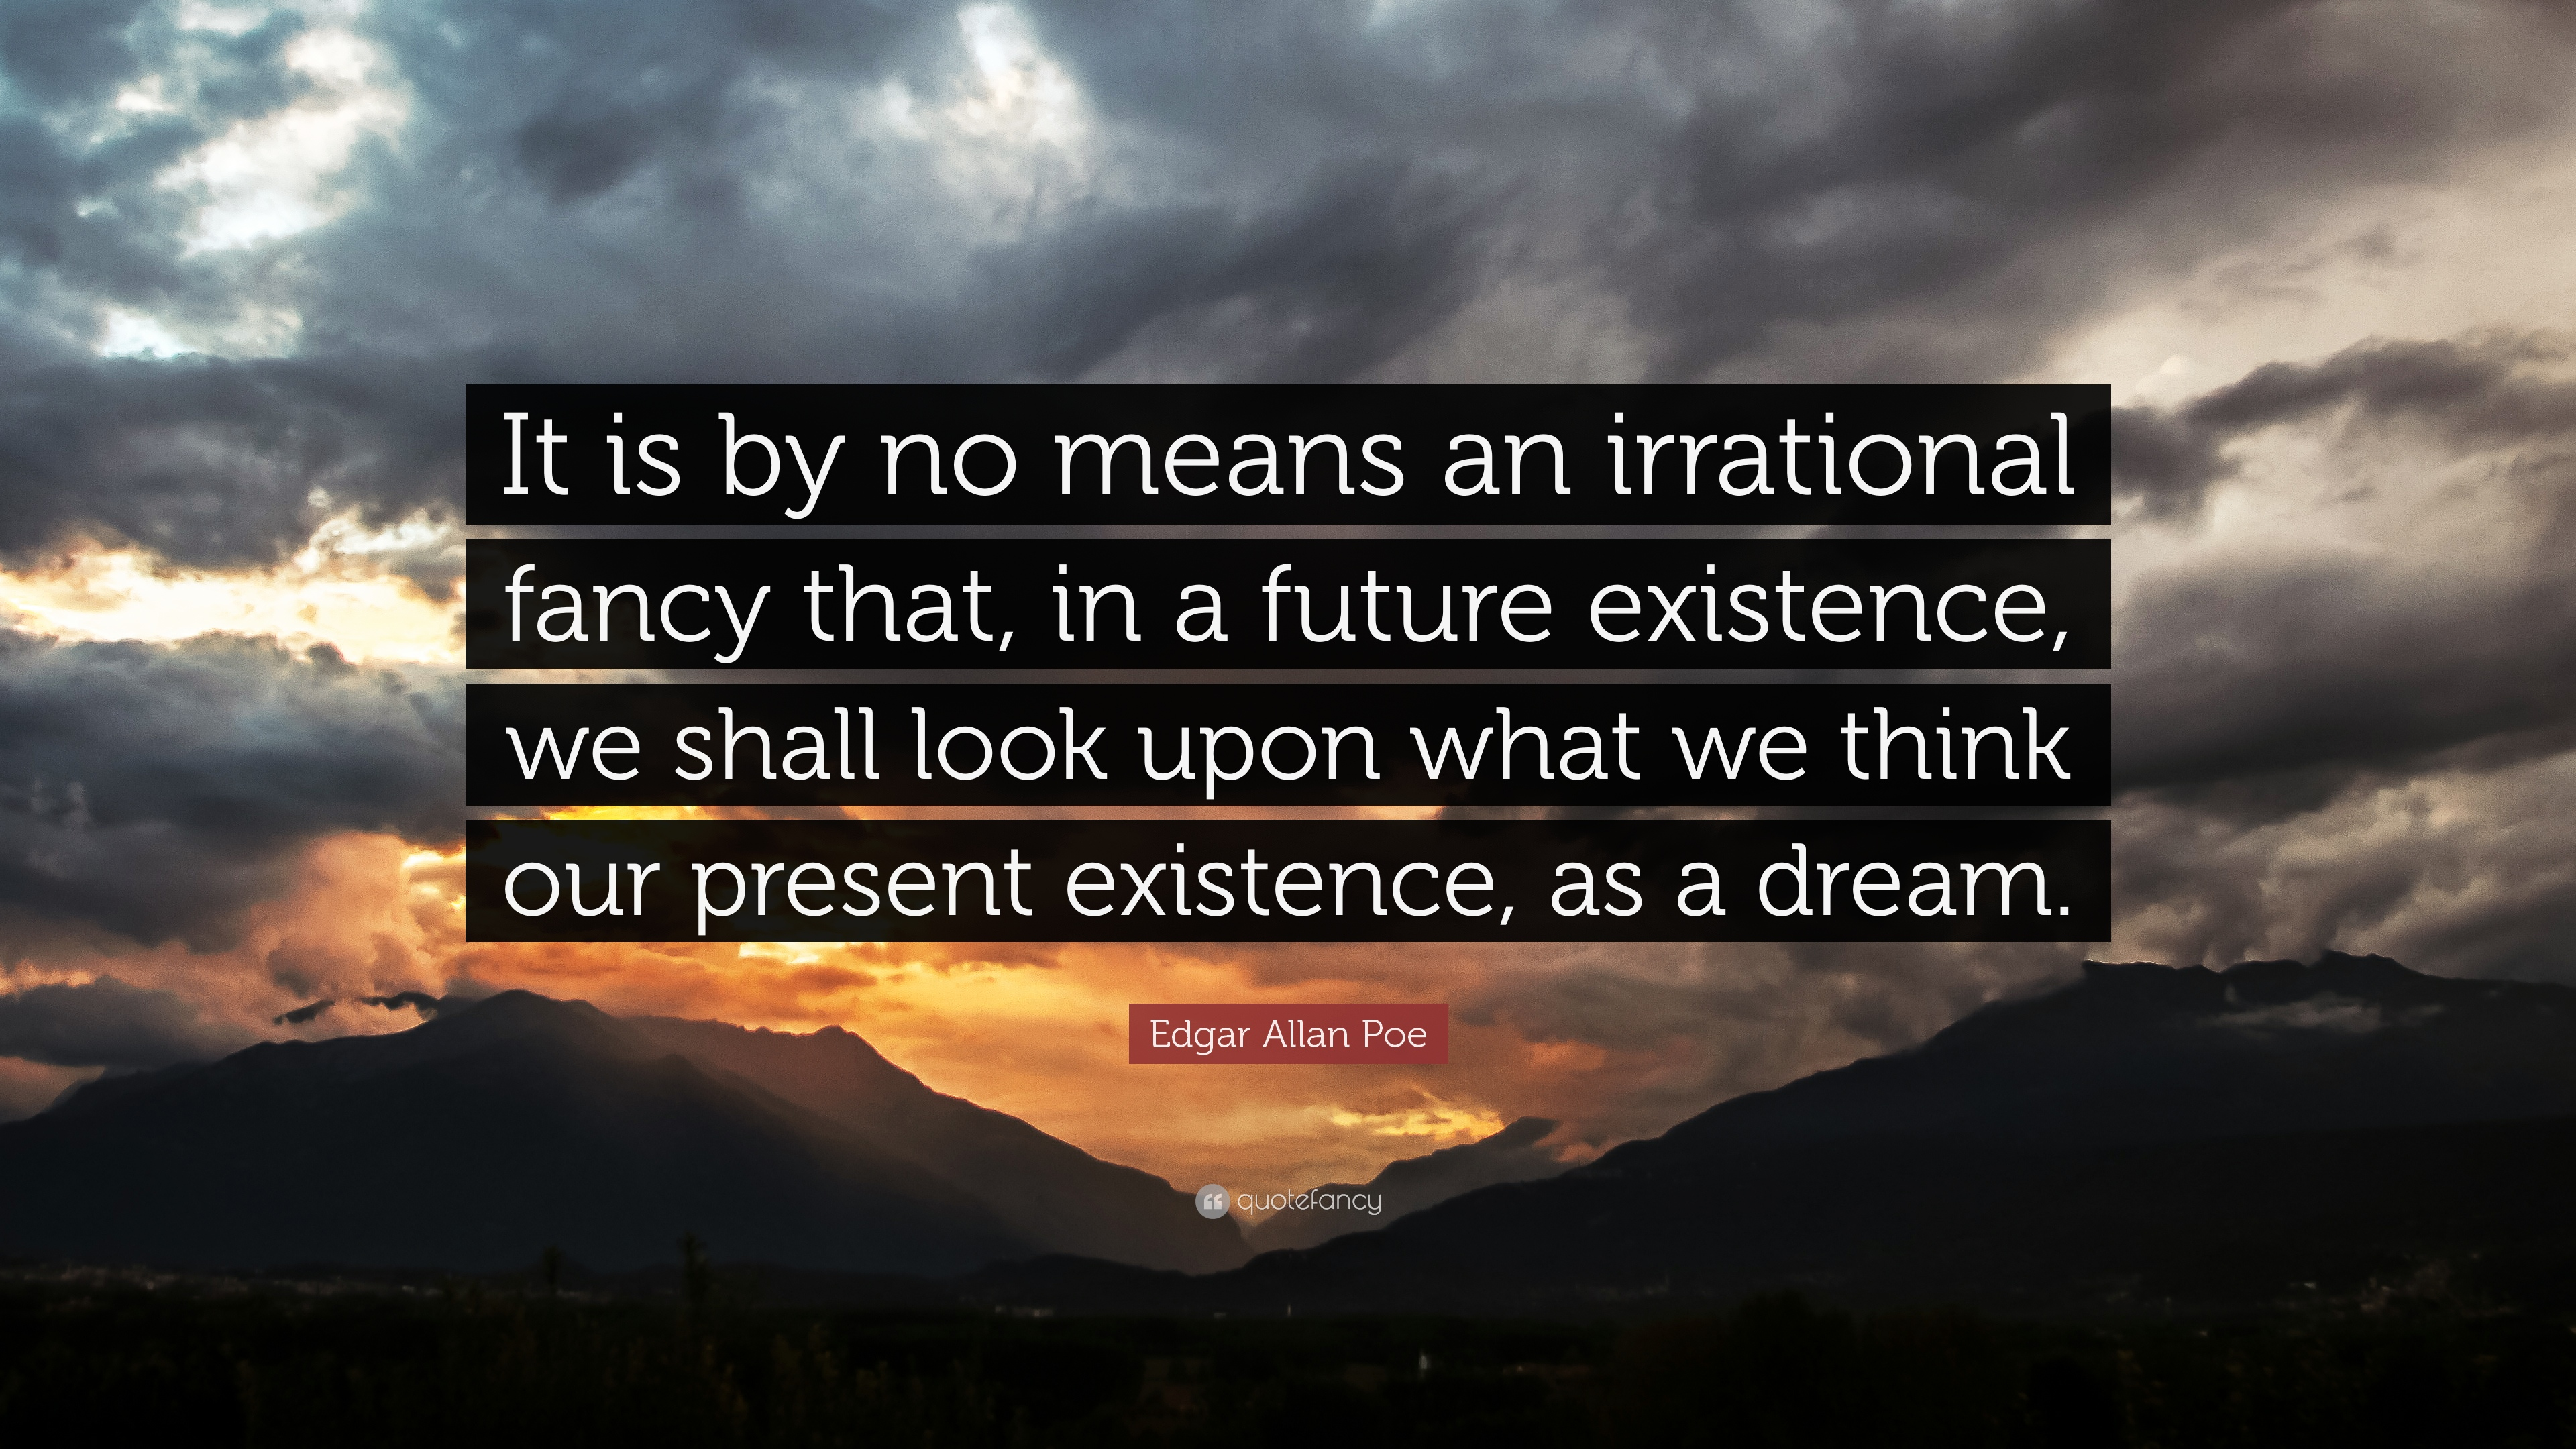 Edgar Allan Poe Quote It Is By No Means An Irrational Fancy That